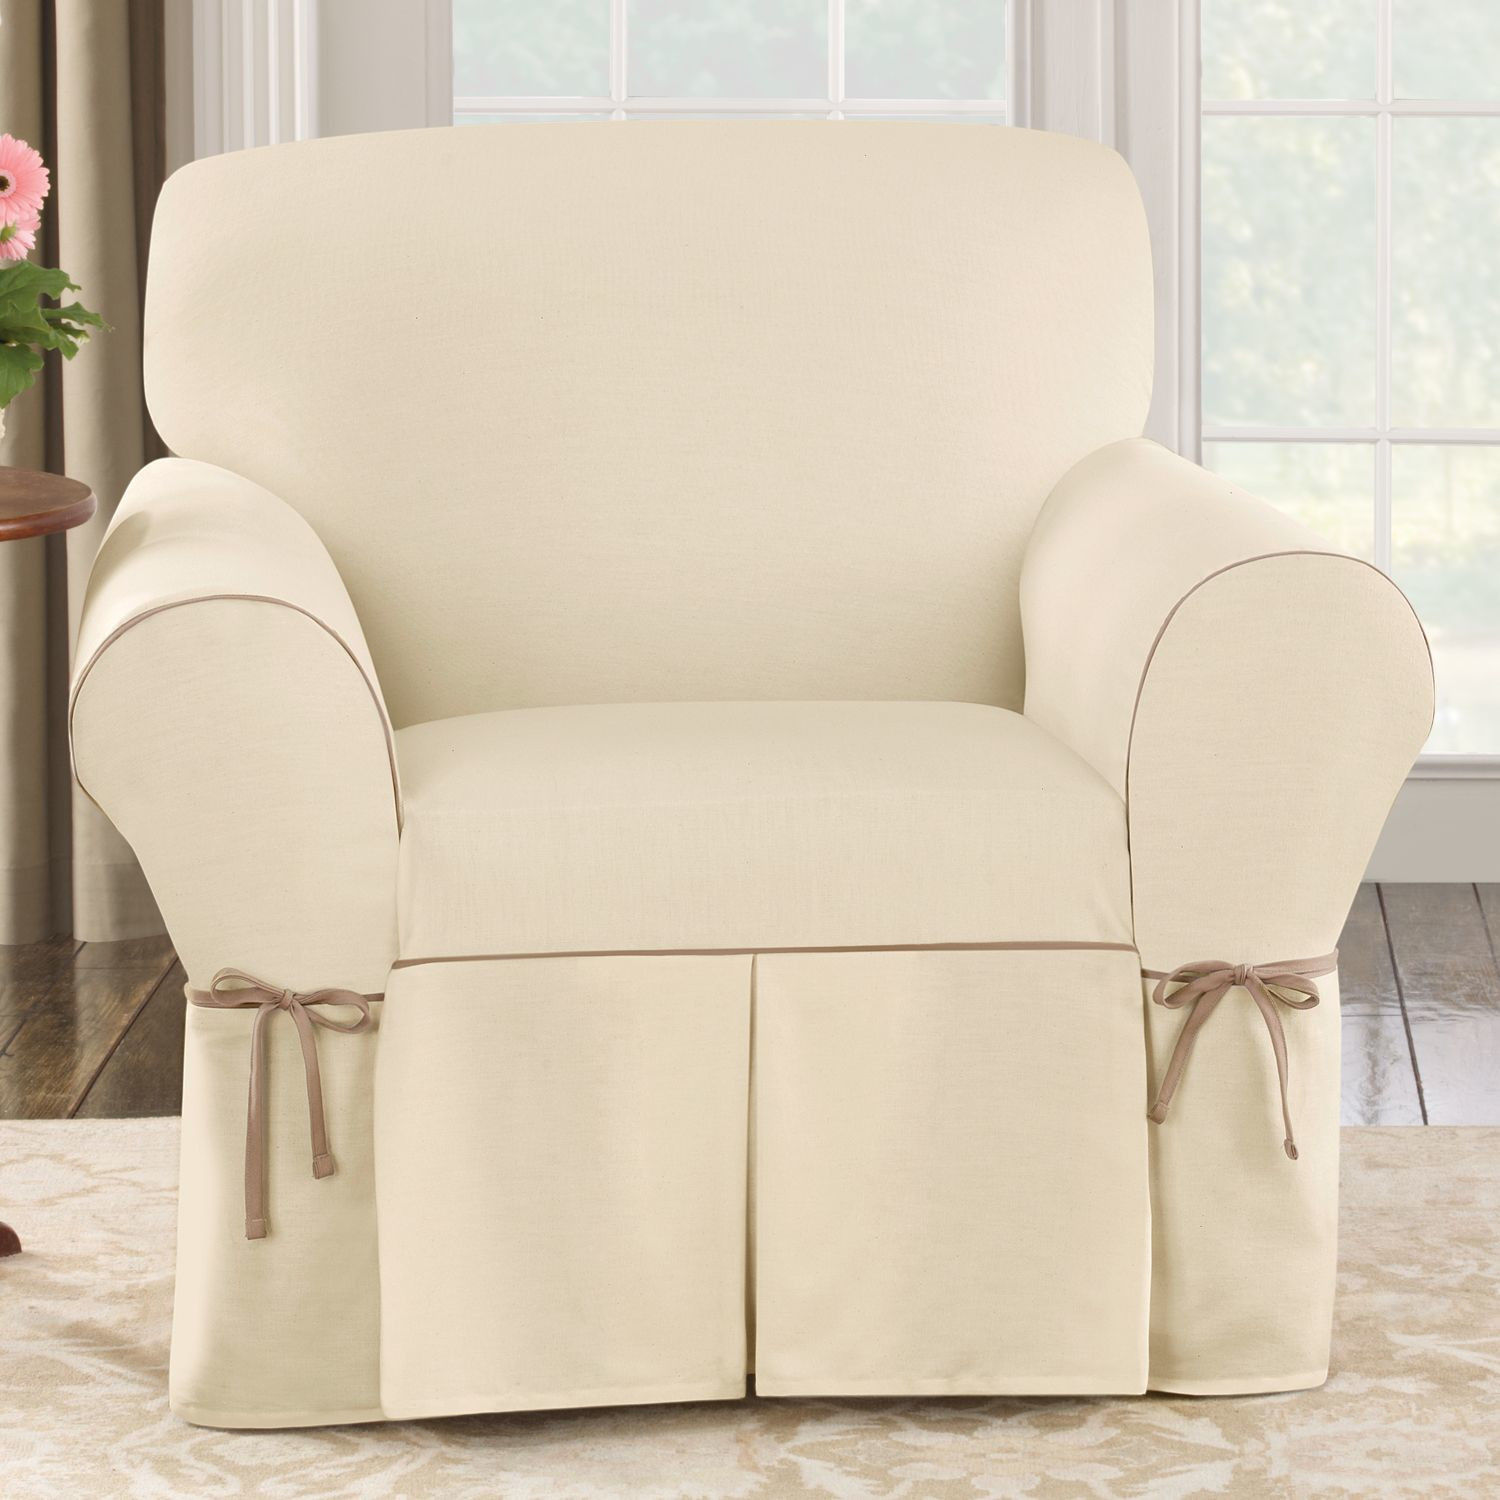 Brilliant Club Chair Slipcovers Summervilleaugusta Org Pabps2019 Chair Design Images Pabps2019Com